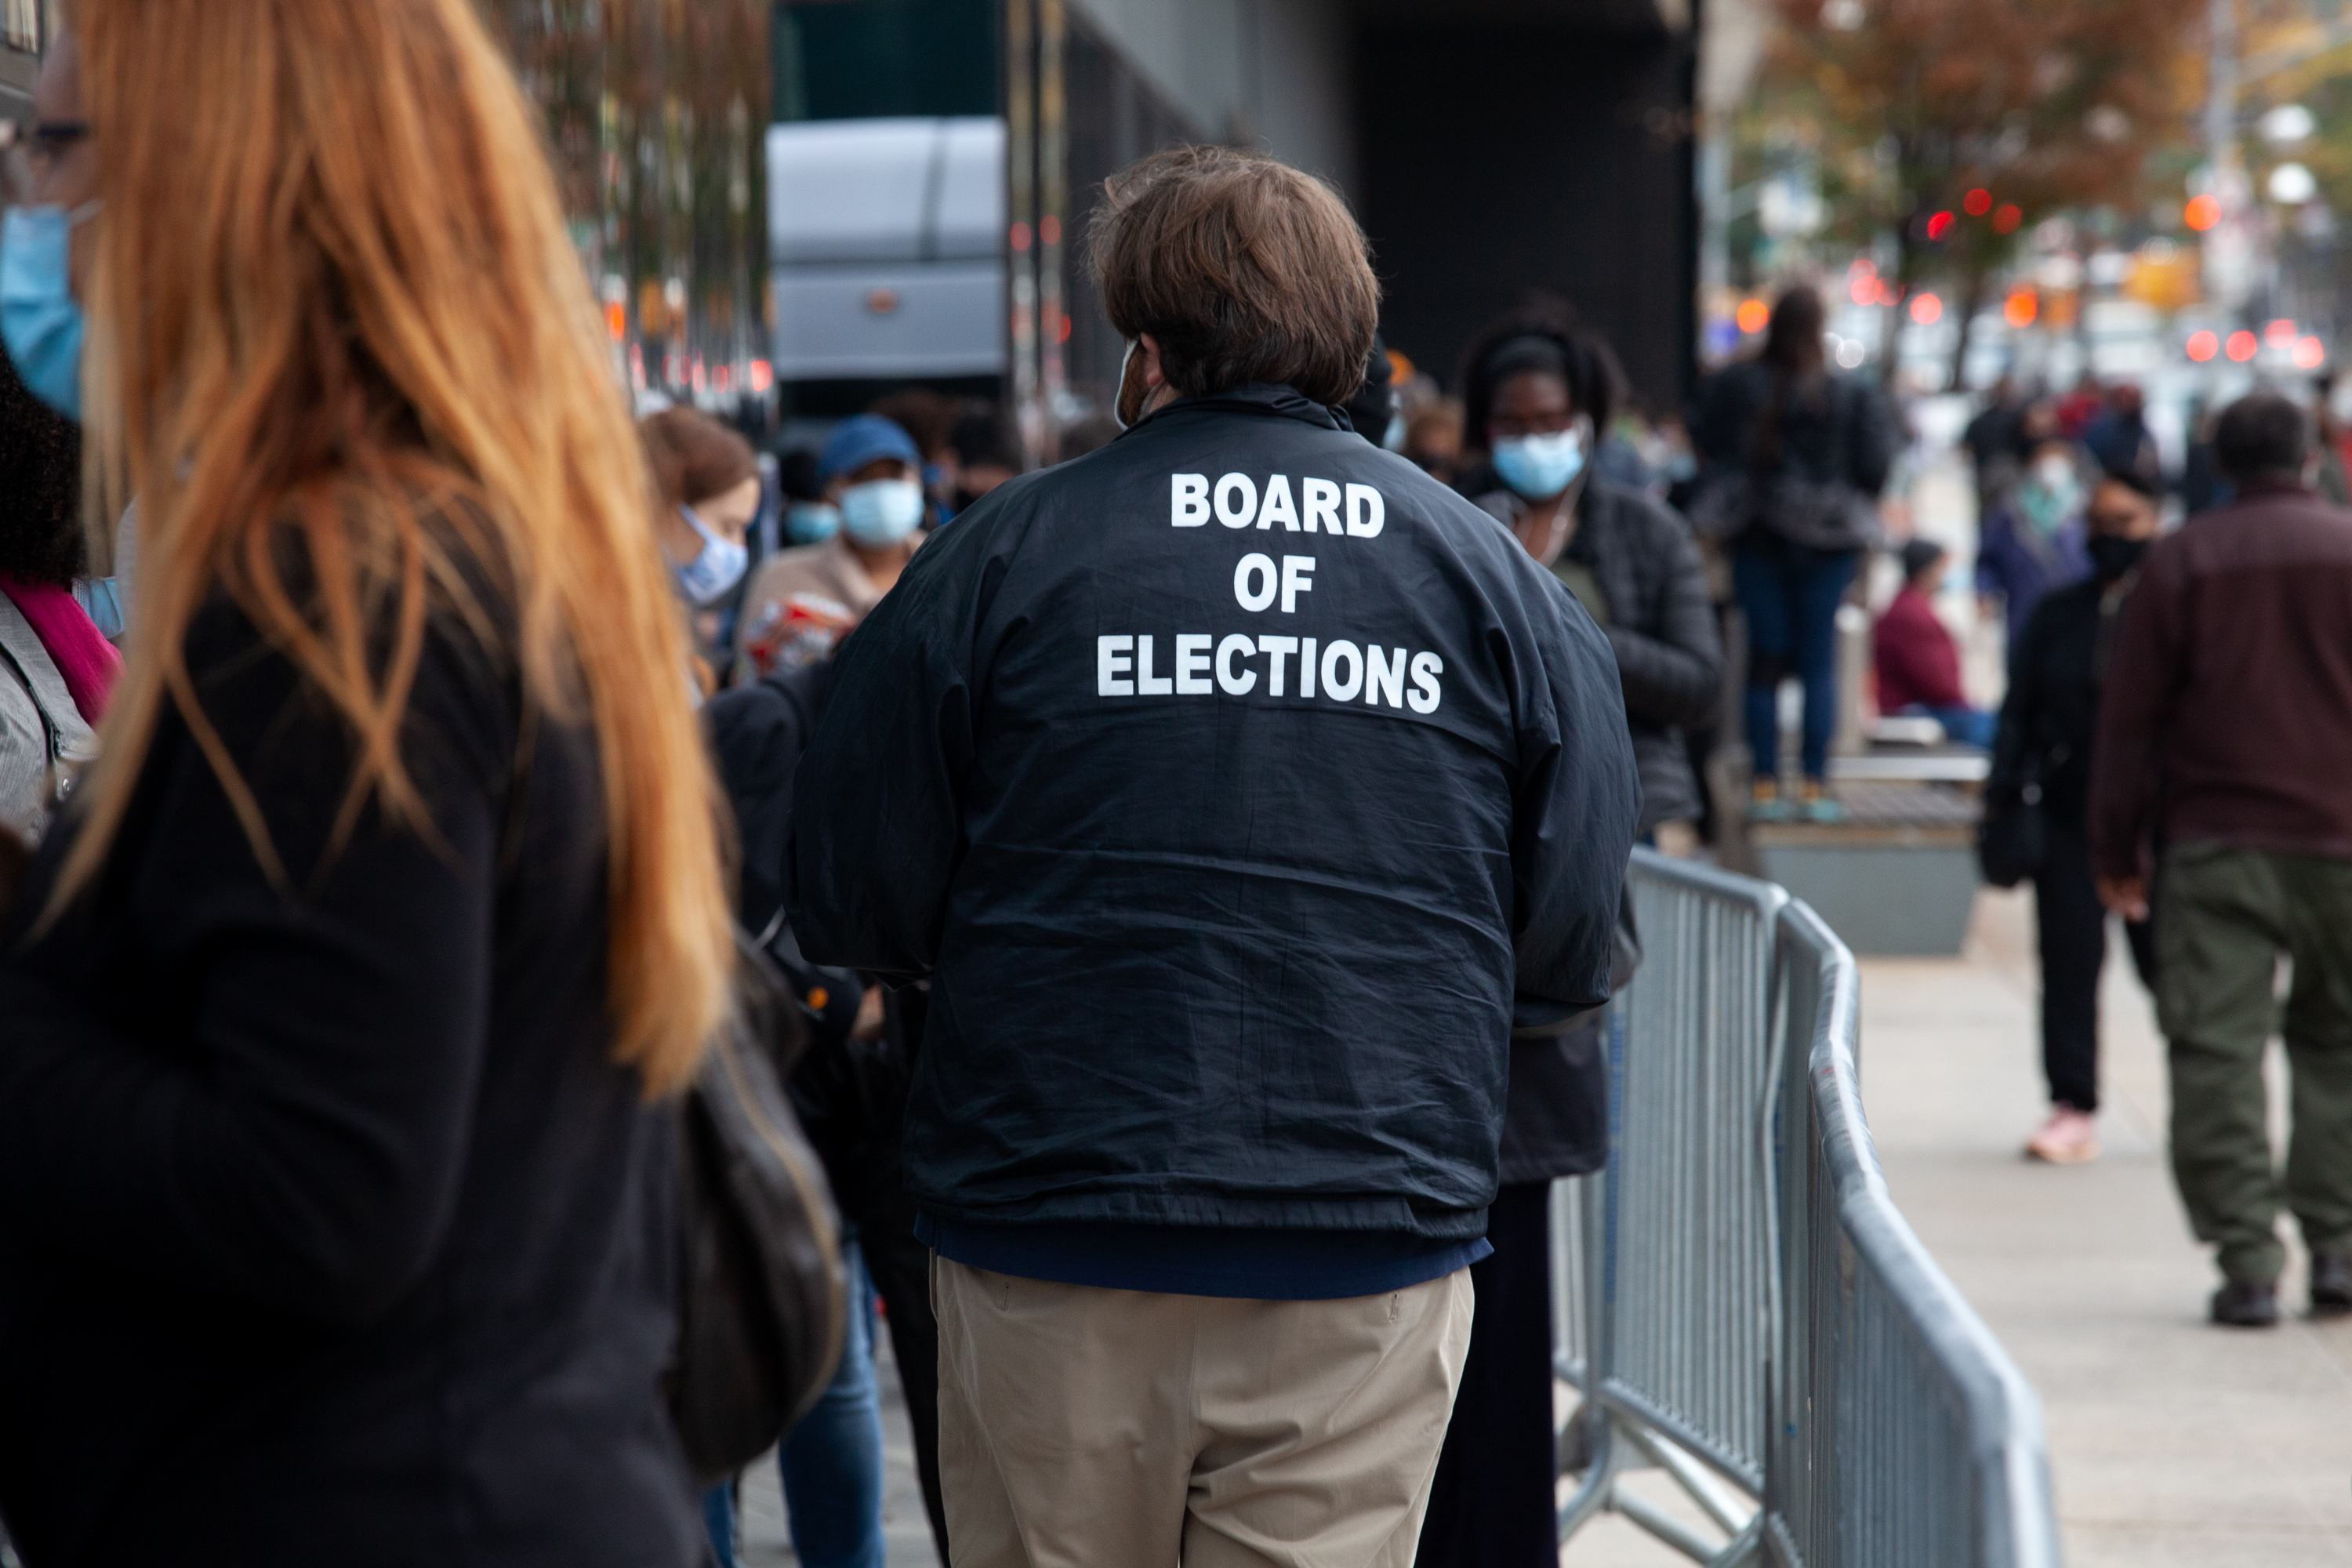 A city Board of Elections worker speaks to New Yorkers in long lines outside the Barclays Center on the first day of early voting, Oct. 24, 2020.